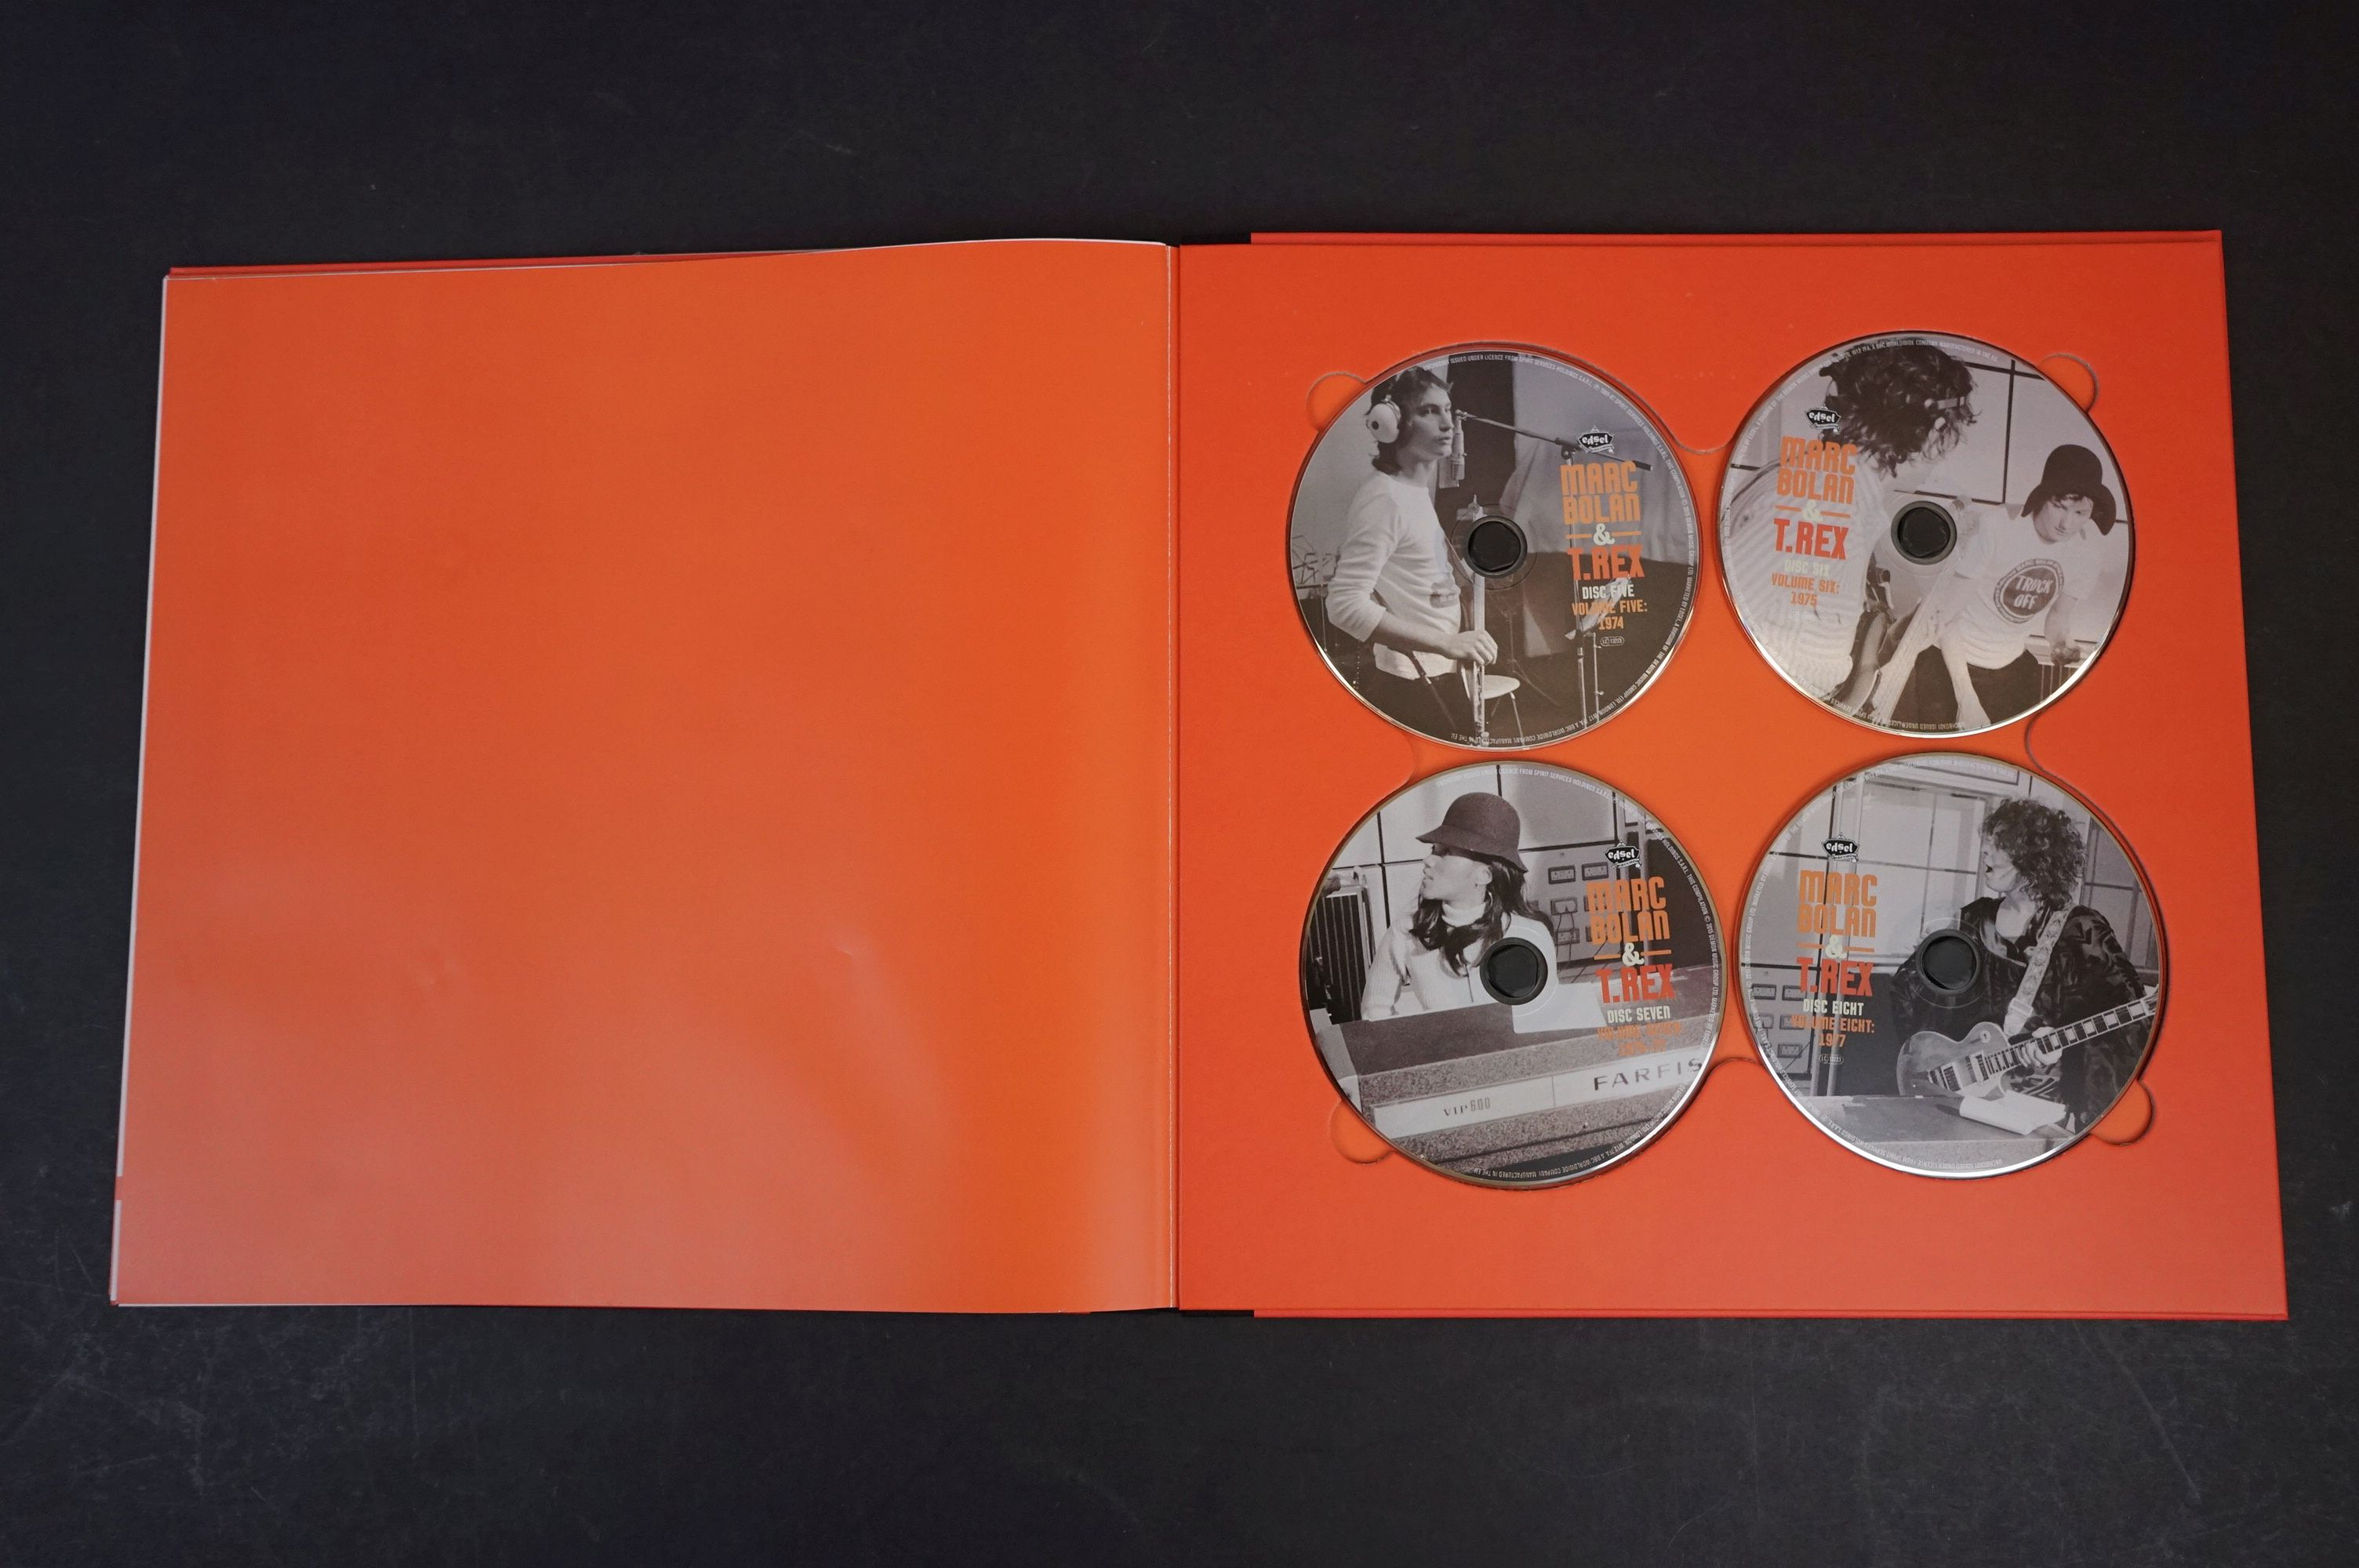 CD - Marc Bolan & T Rex Unchained Home Recordings & Studio Outtakes 8 CD Set UNCHBOX01 ex - Image 5 of 6